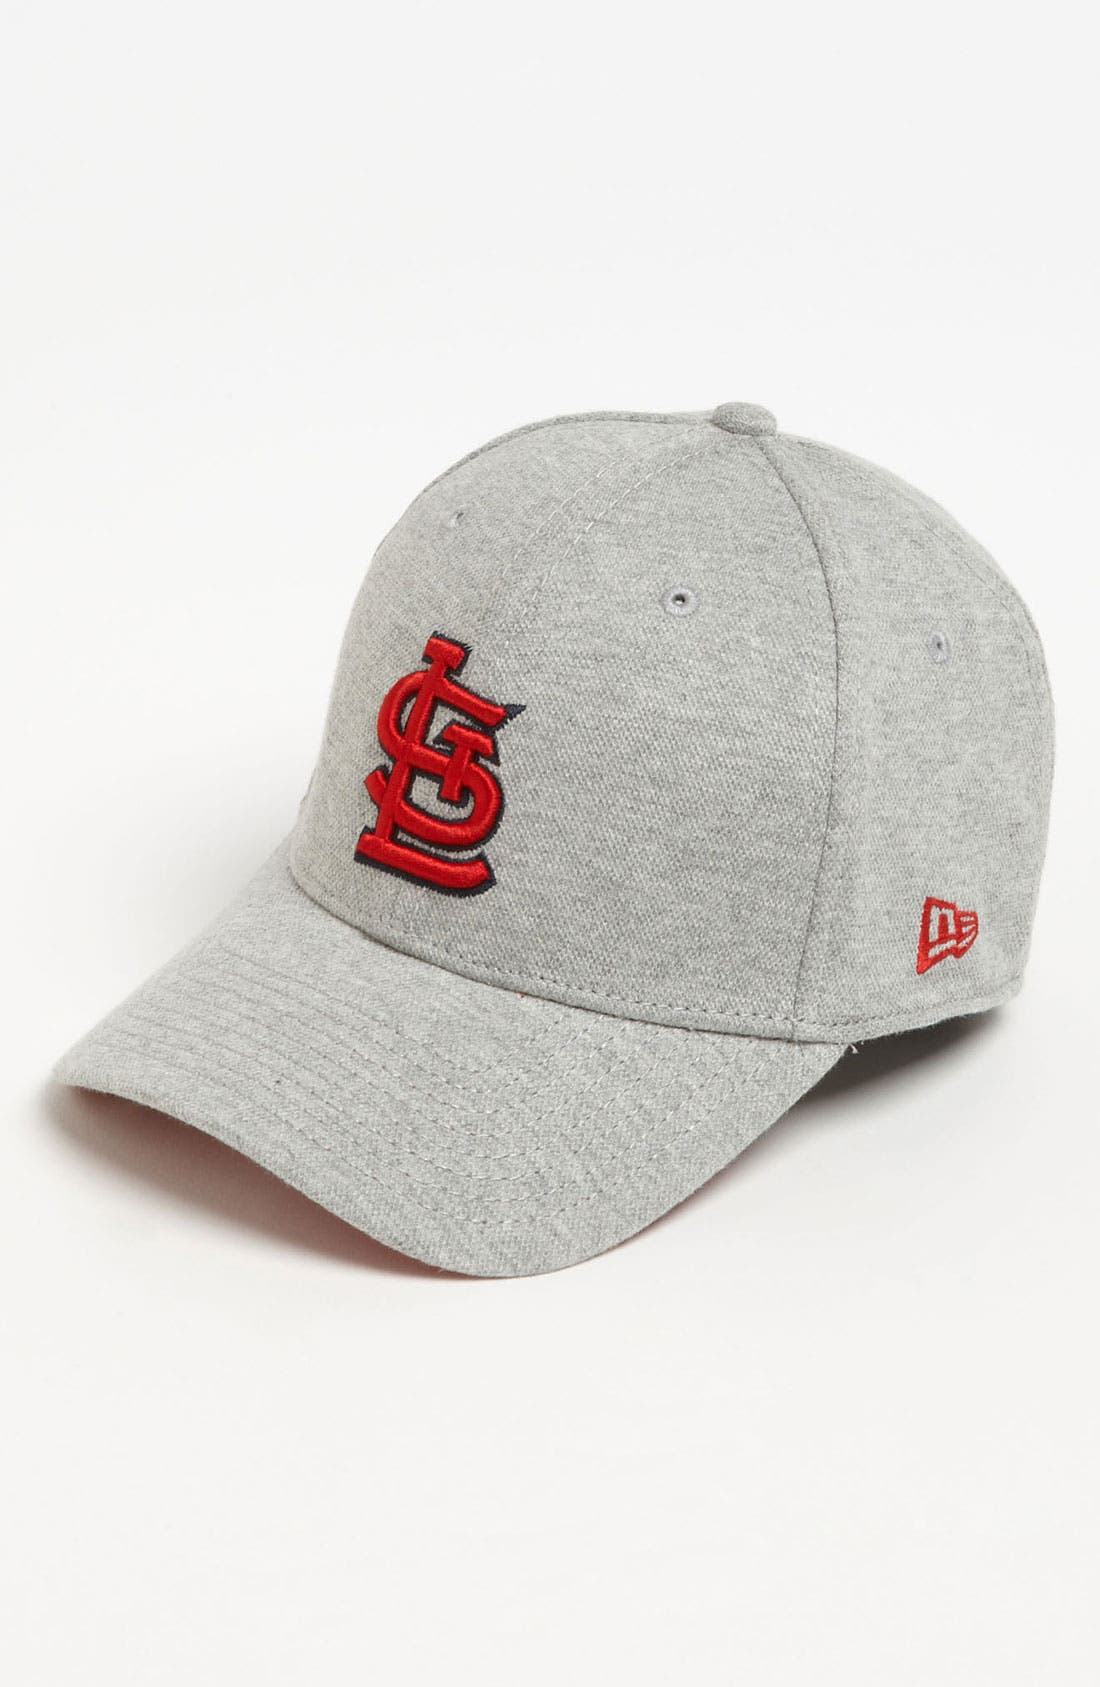 Main Image - New Era Cap 'Spring Stretch - St. Louis Cardinals' Baseball Cap